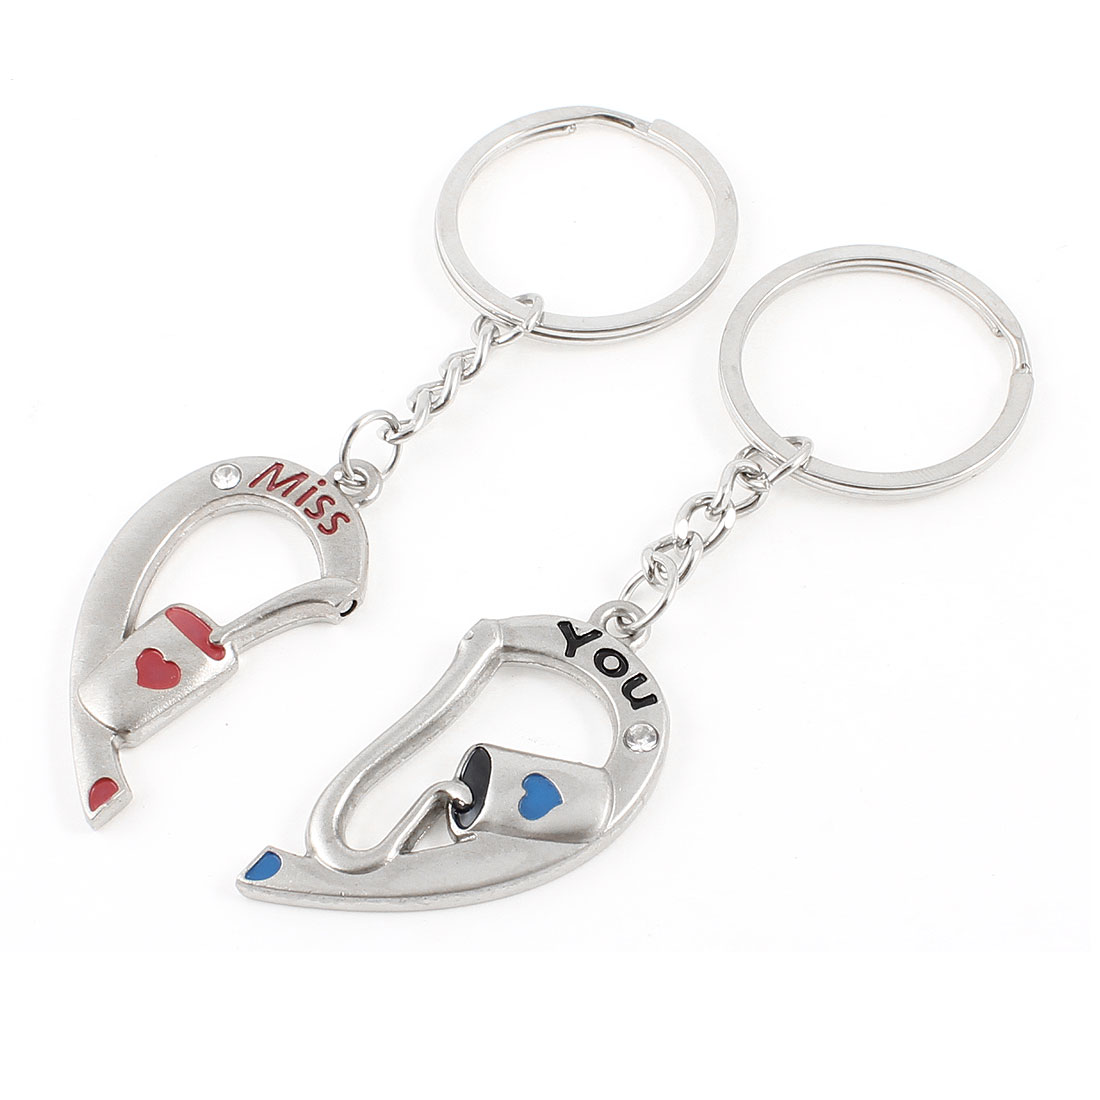 2 Pcs Valentines Gift Miss You Pattern Silver Tone Heart Shape Key Chain